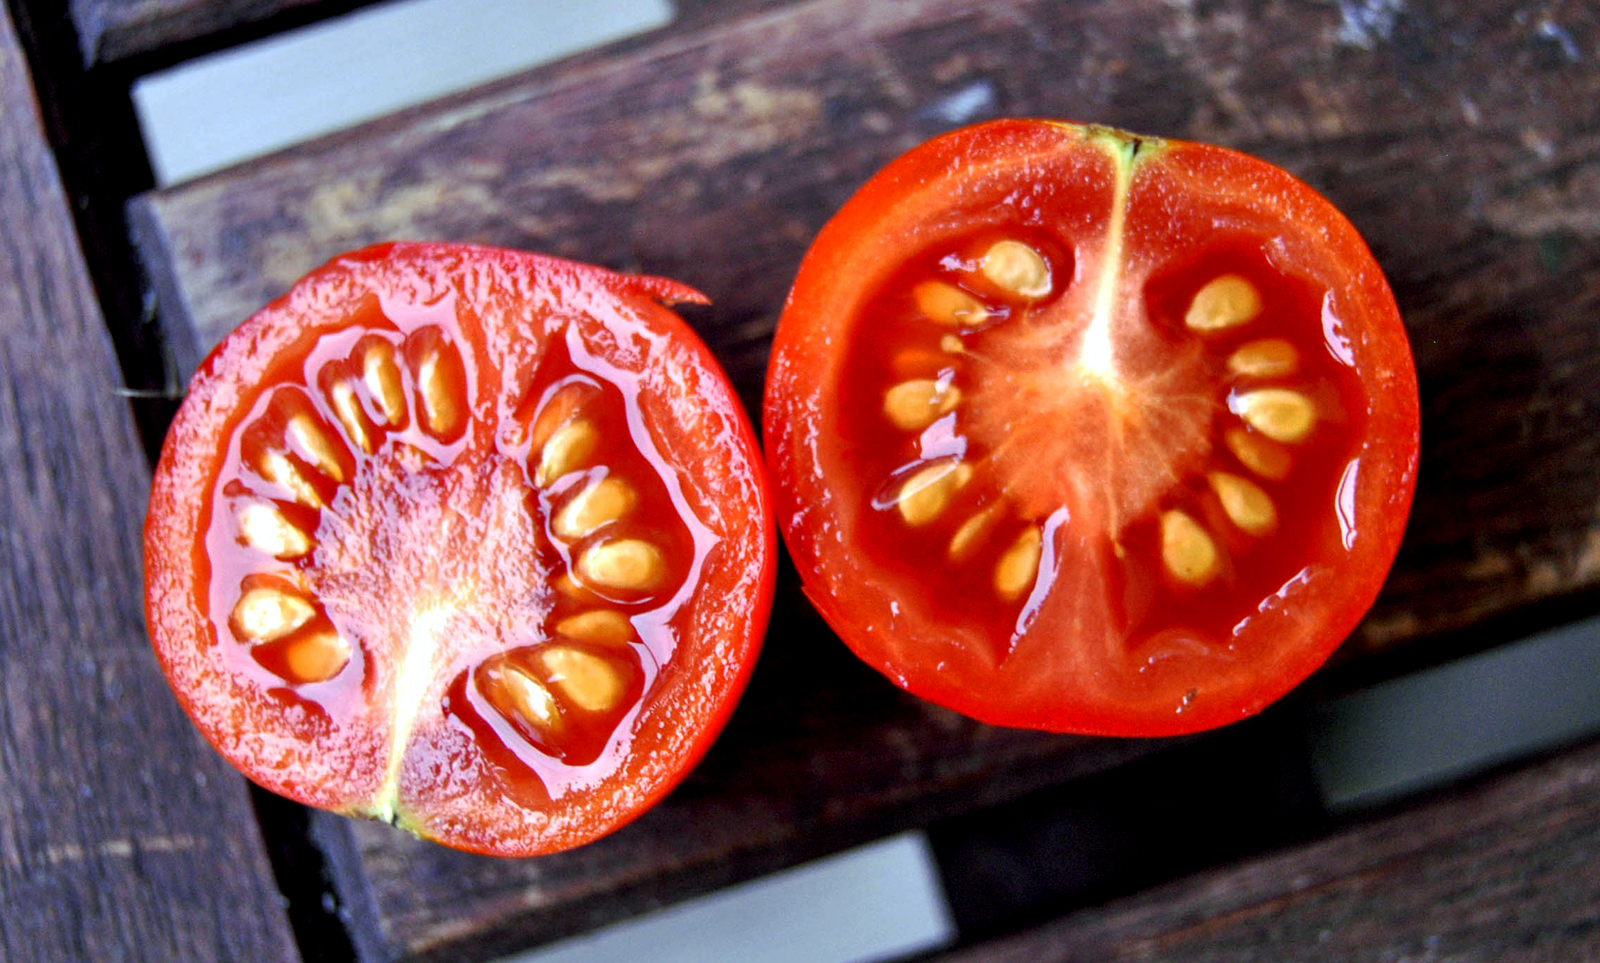 seed saving getting something for nothing image of two halves of a tomato showing the seeds, on a background of wood